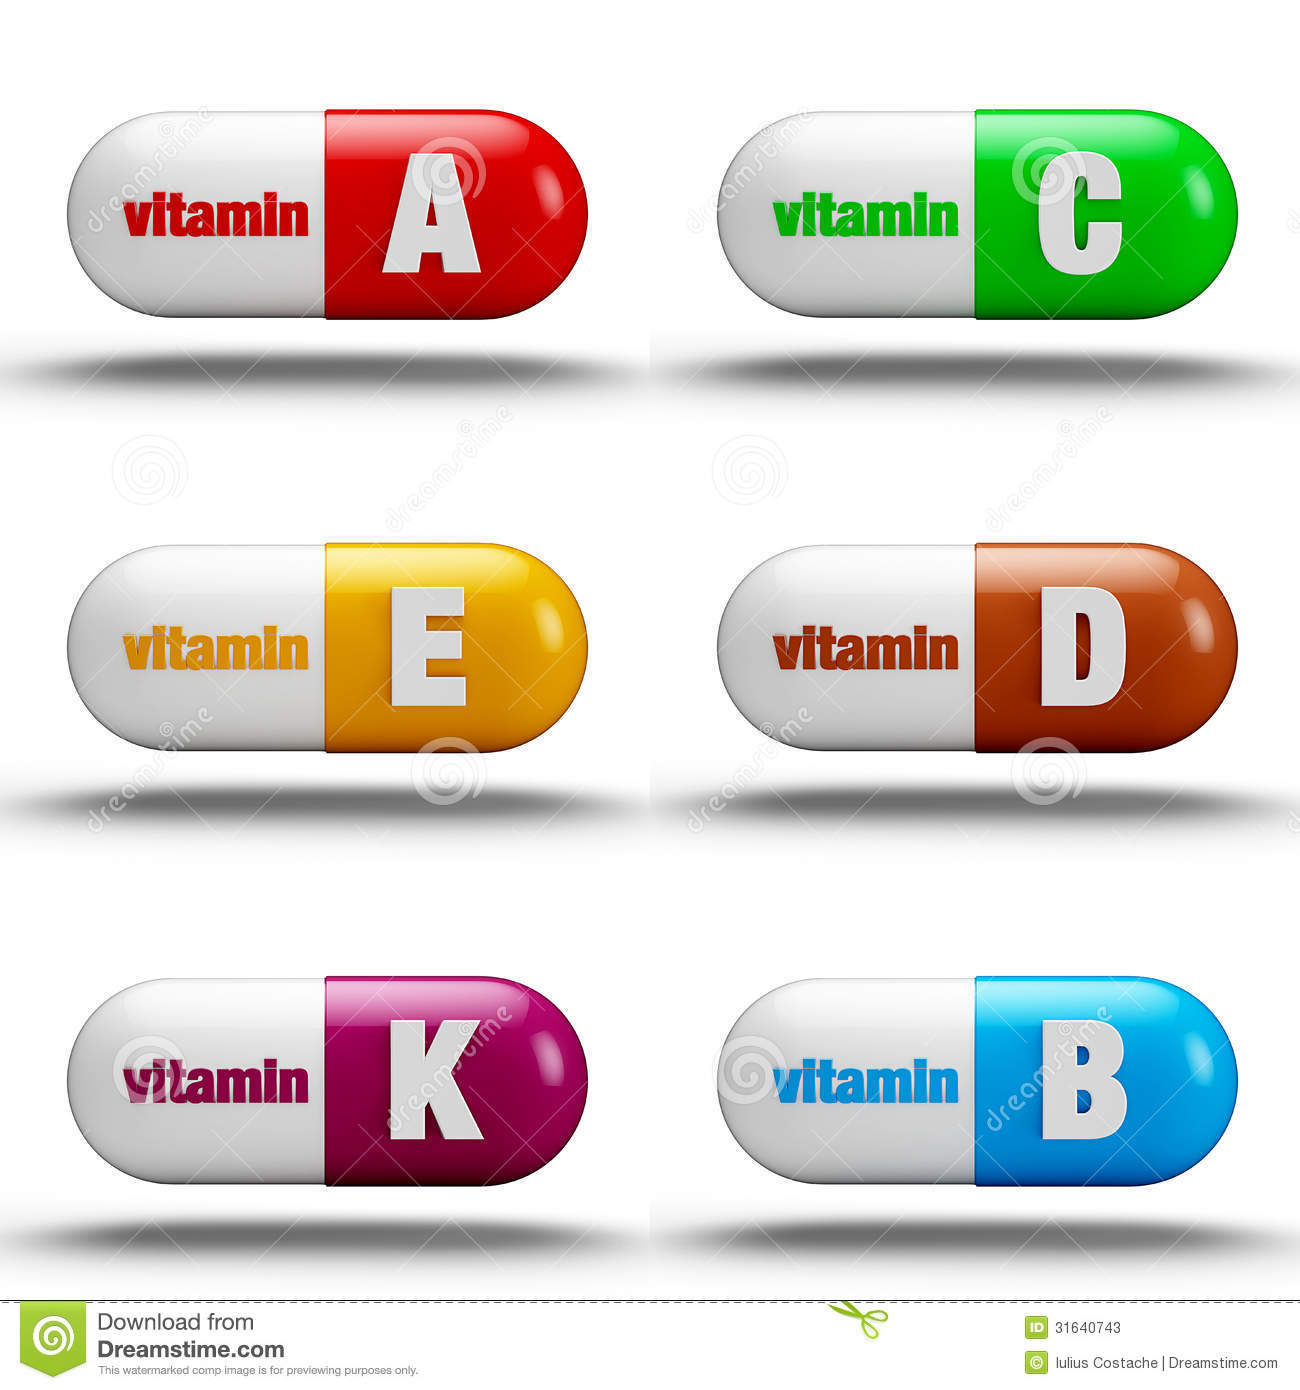 Vitamin Pills Stock Photos - Image: 31640743